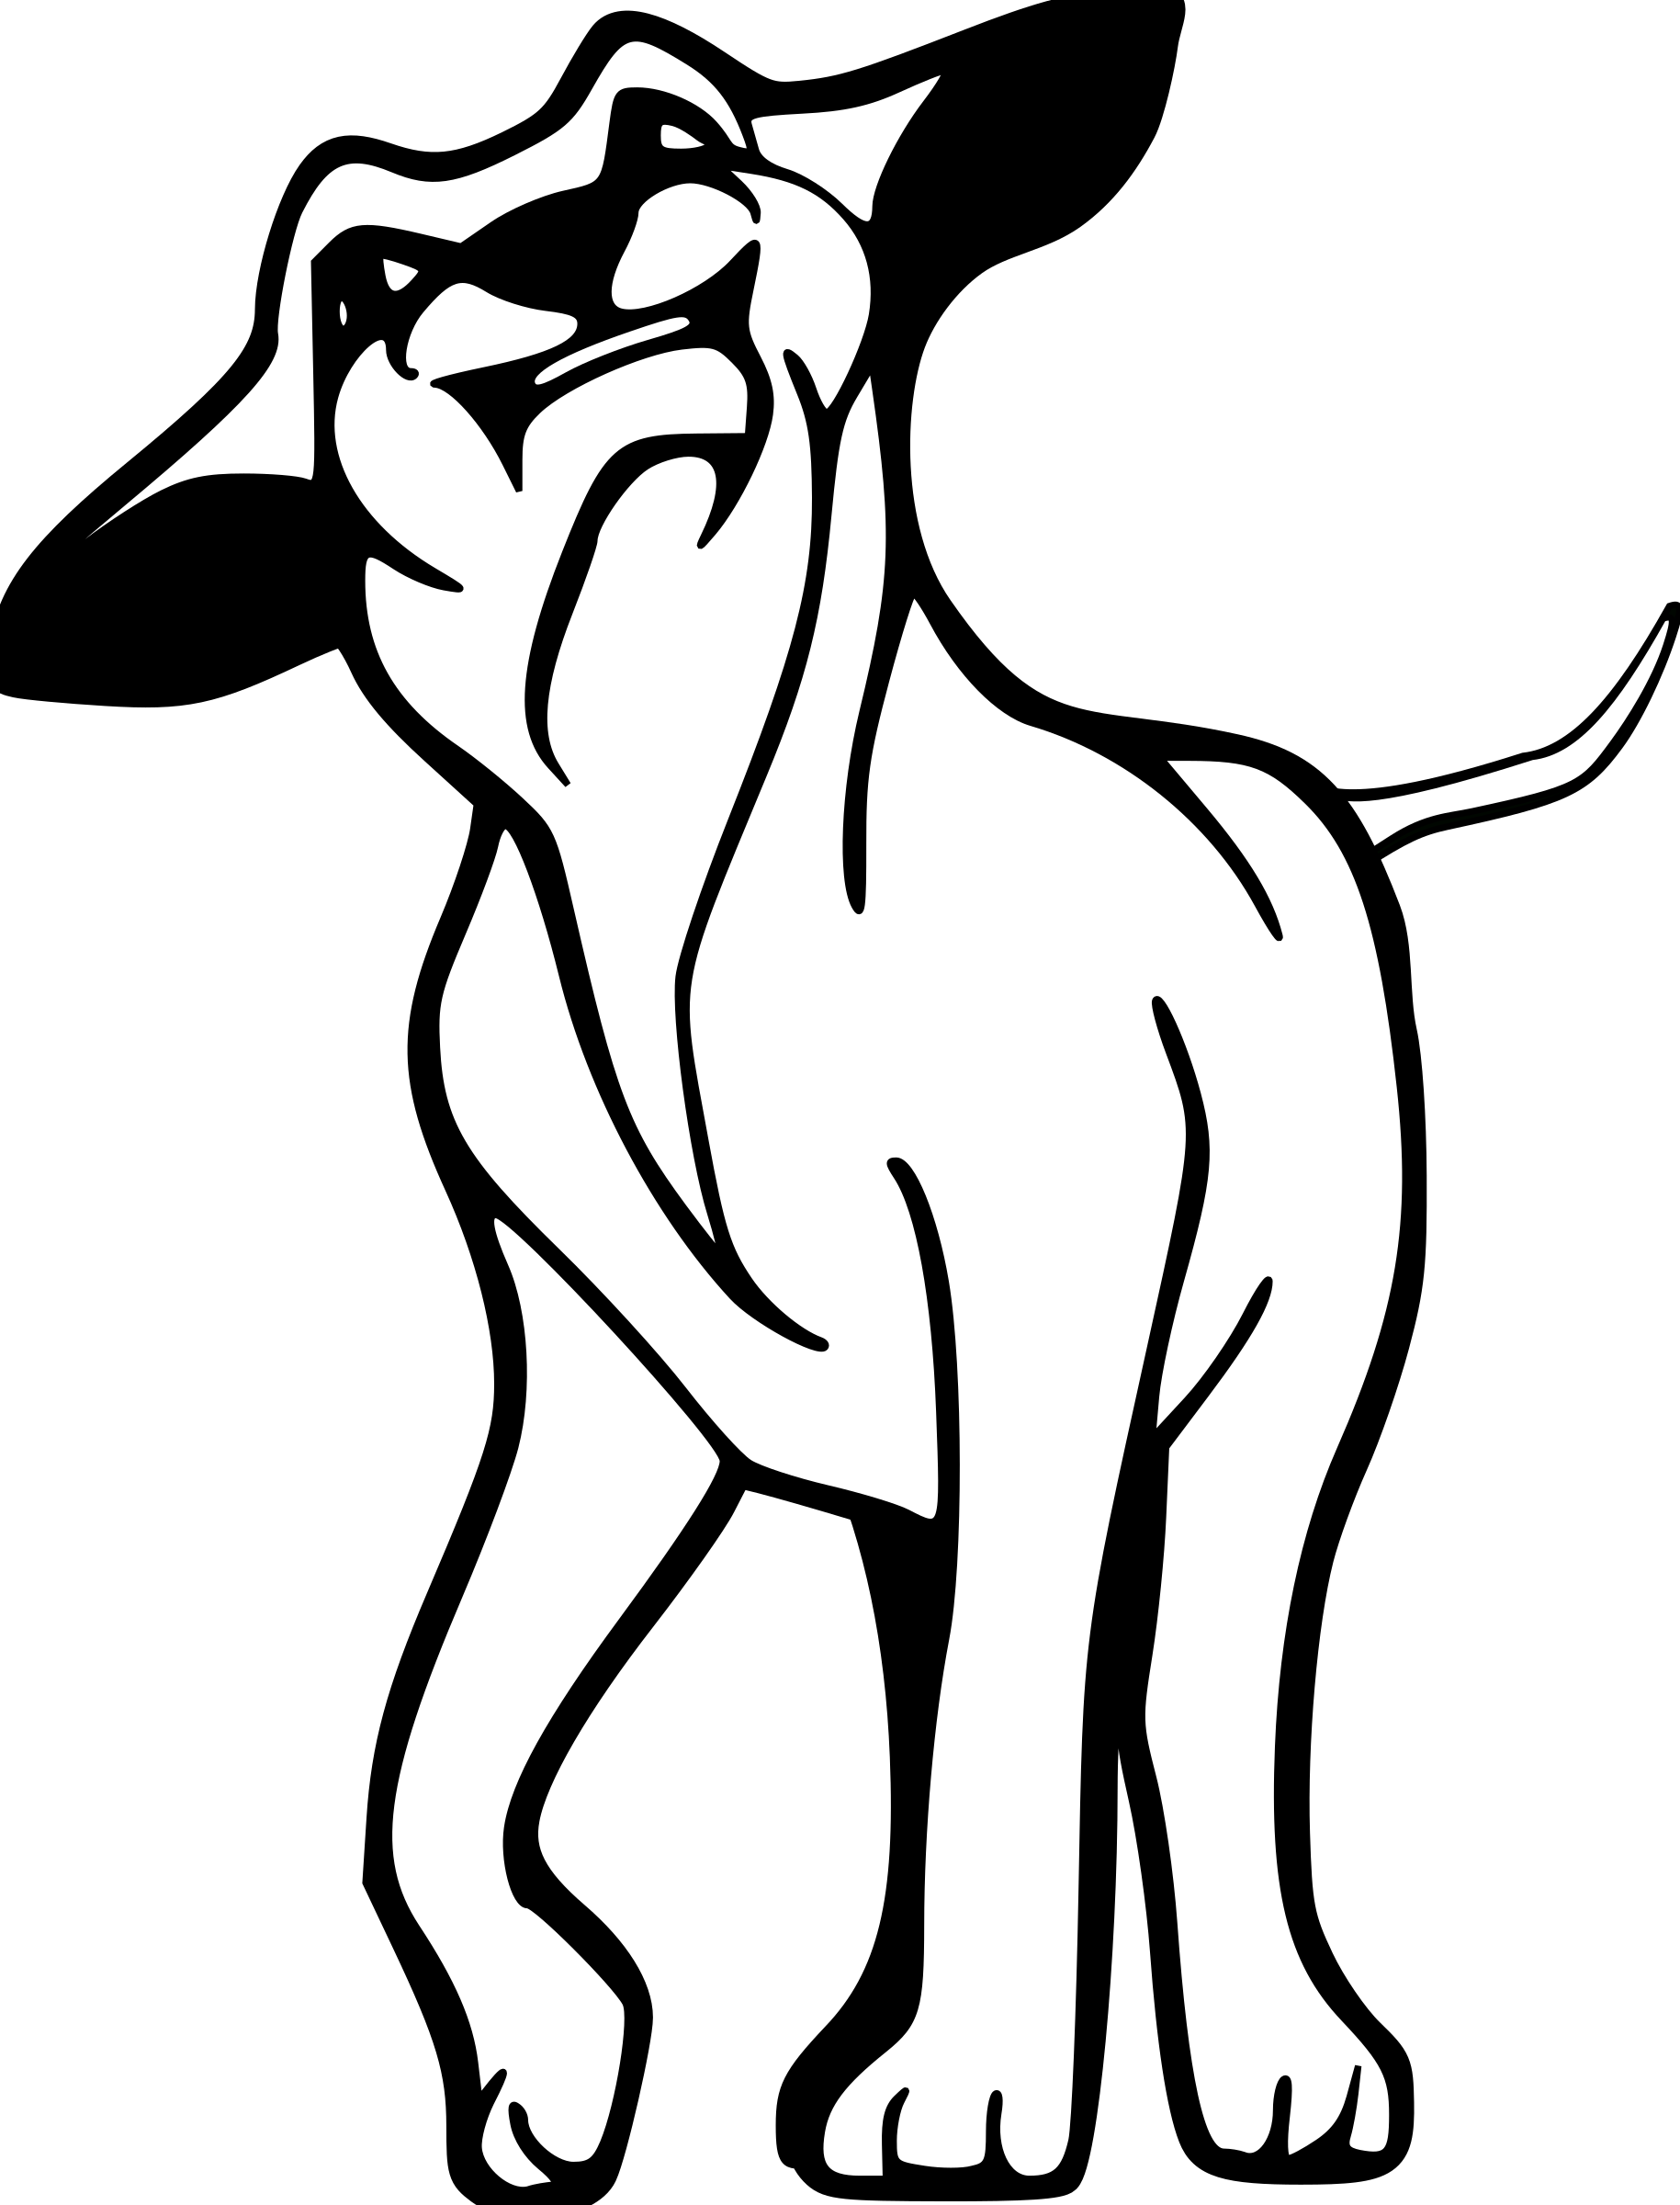 Angry dog clipart svg transparent stock Clipart - angry dog 2 svg transparent stock